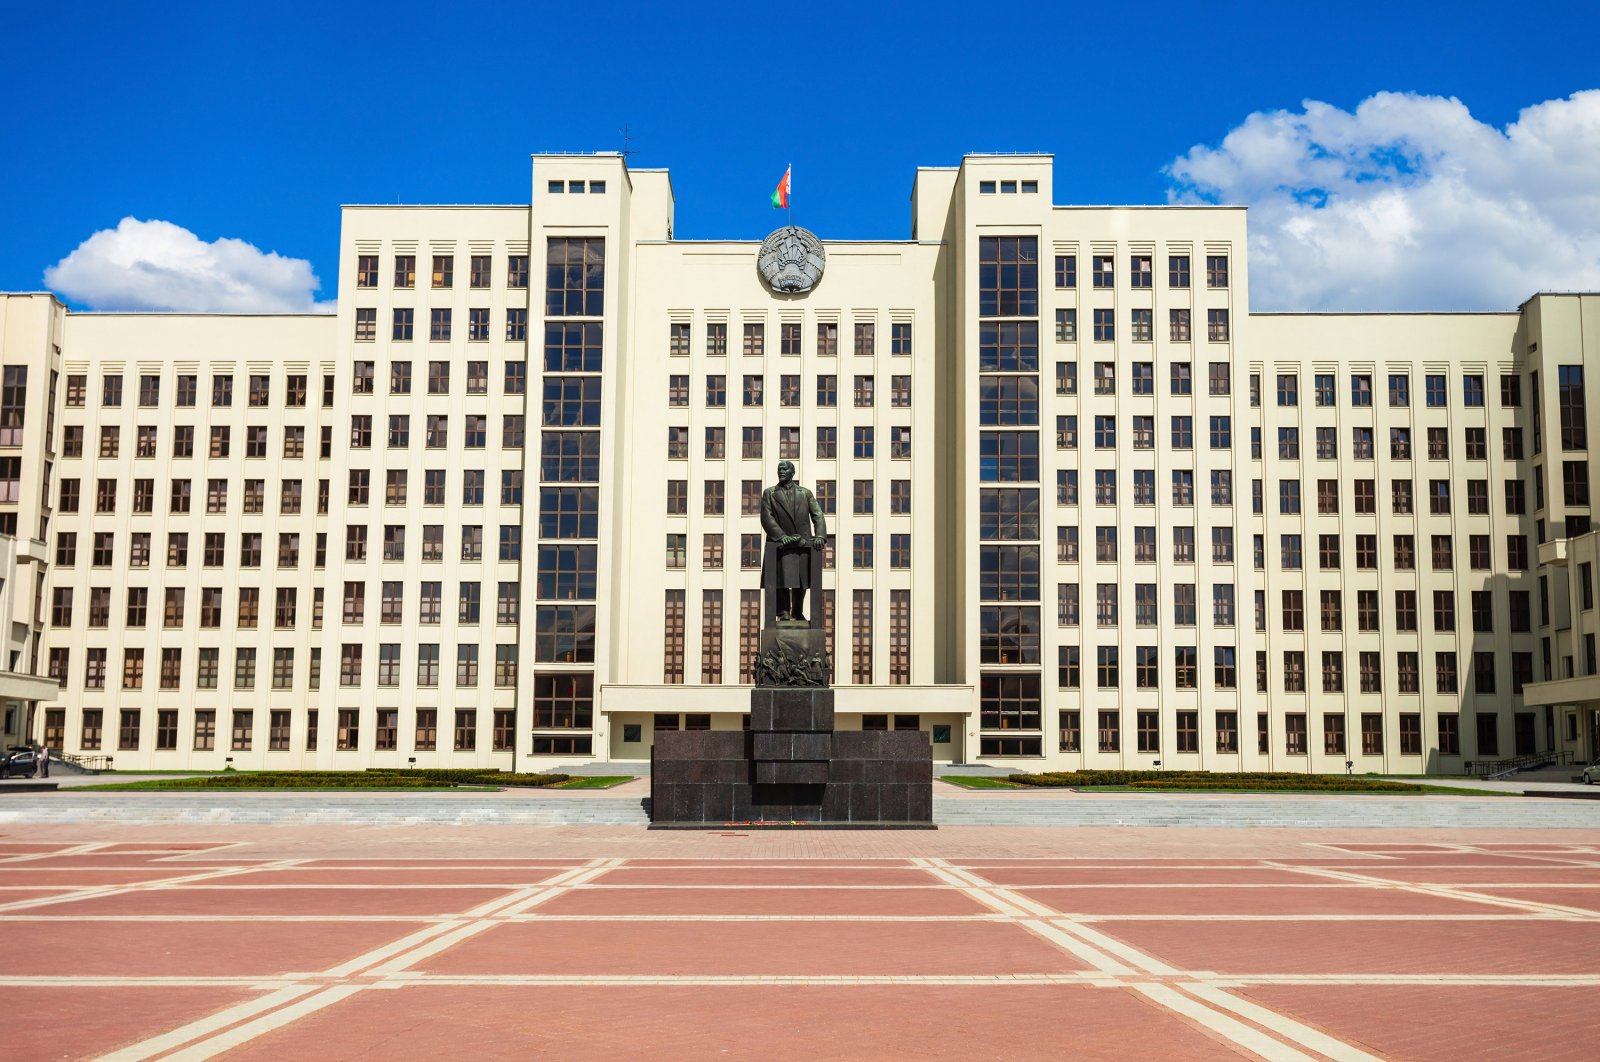 A general view of the House of the Government building in Minsk, Belarus. (Shutterstock Photo)